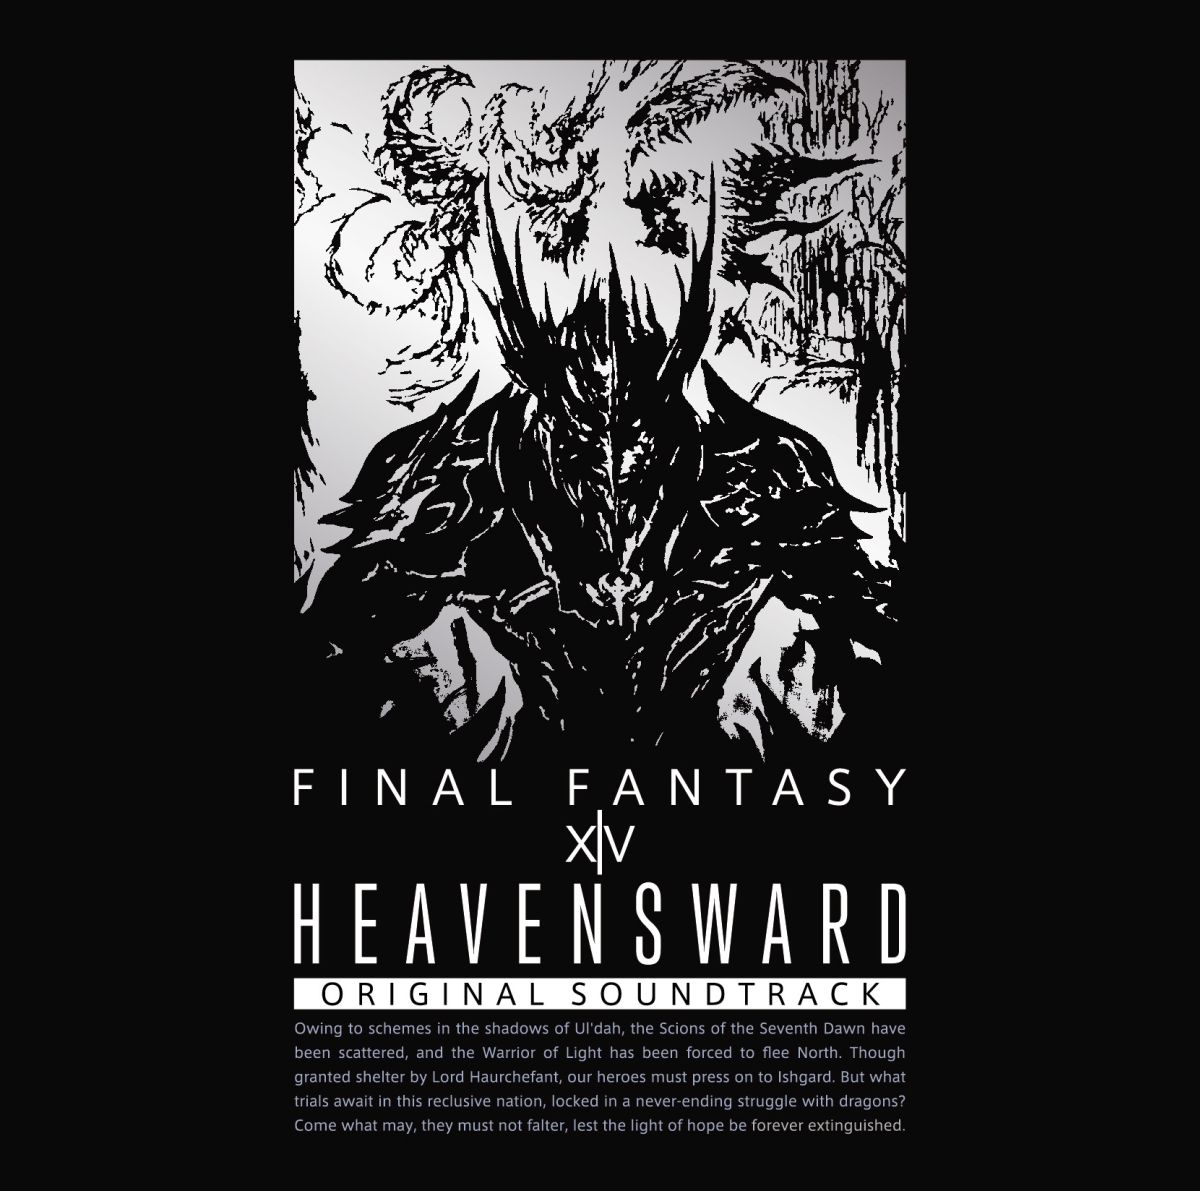 アニメ, キッズアニメ HeavenswardFINAL FANTASY XIV Original SoundtrackBlu-ray Disc Music